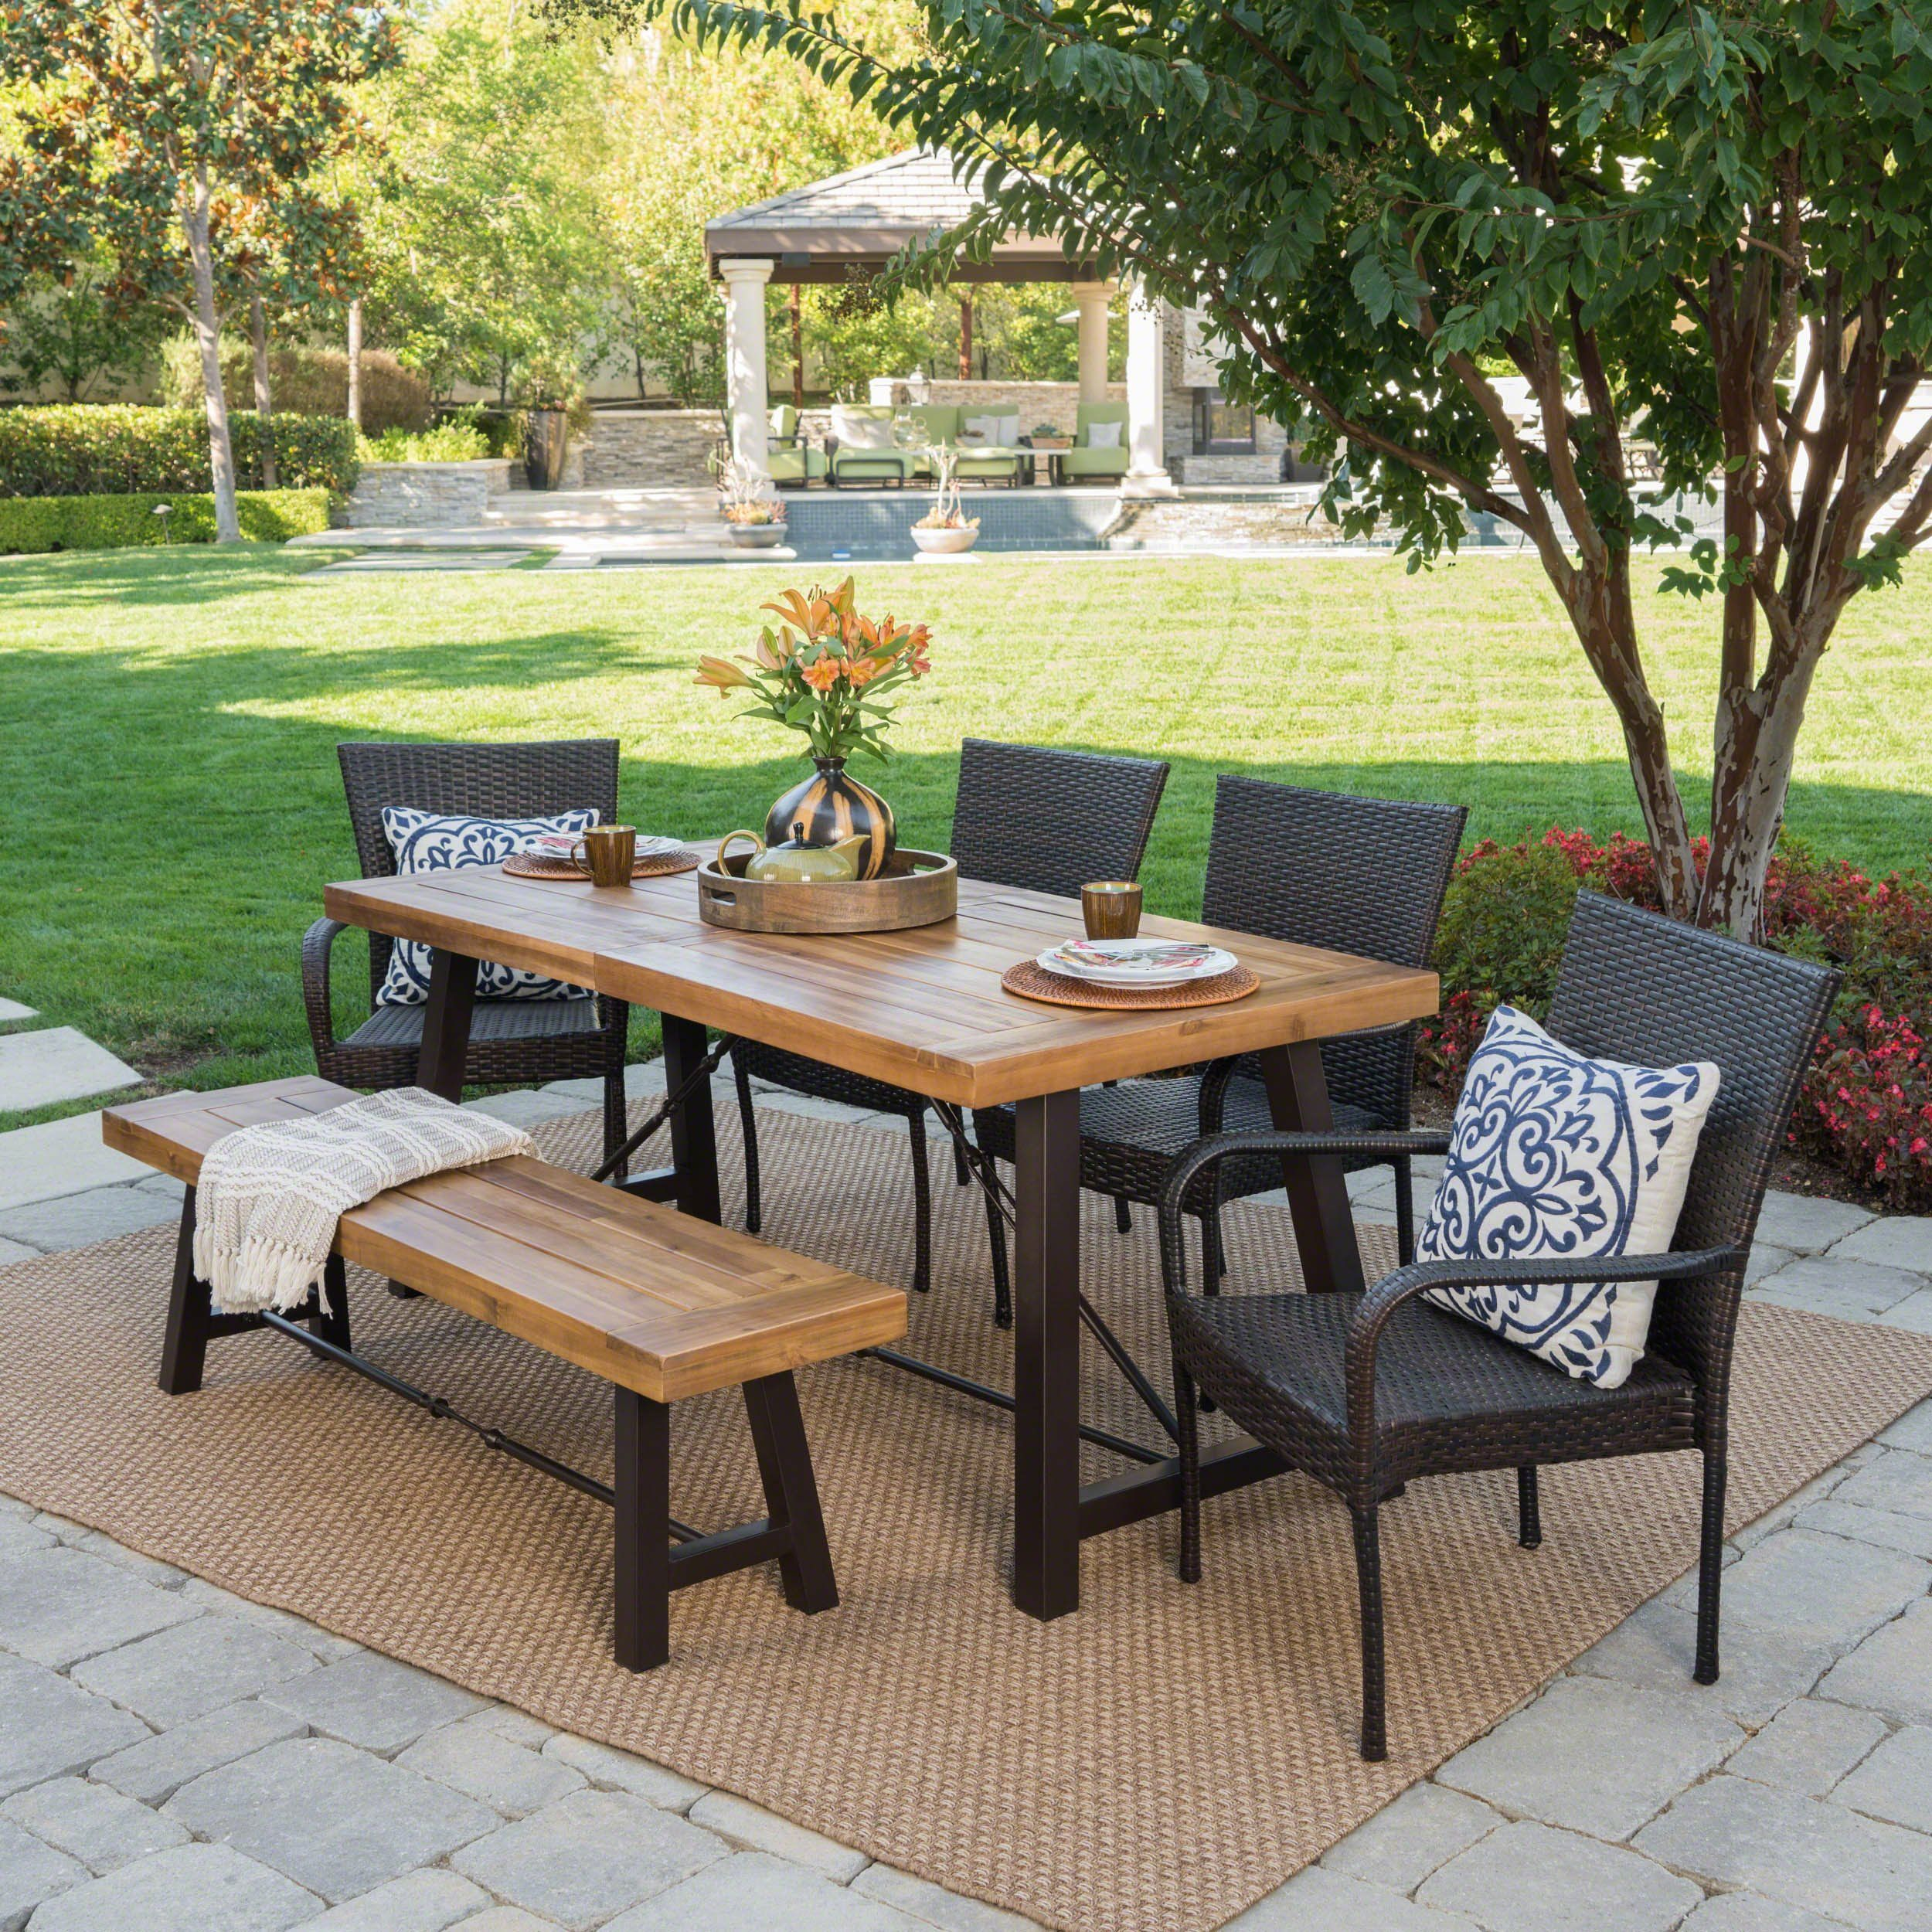 soltice outdoor 6 teak finished acacia wood dining on Backyard Outdoor Furniture id=27001